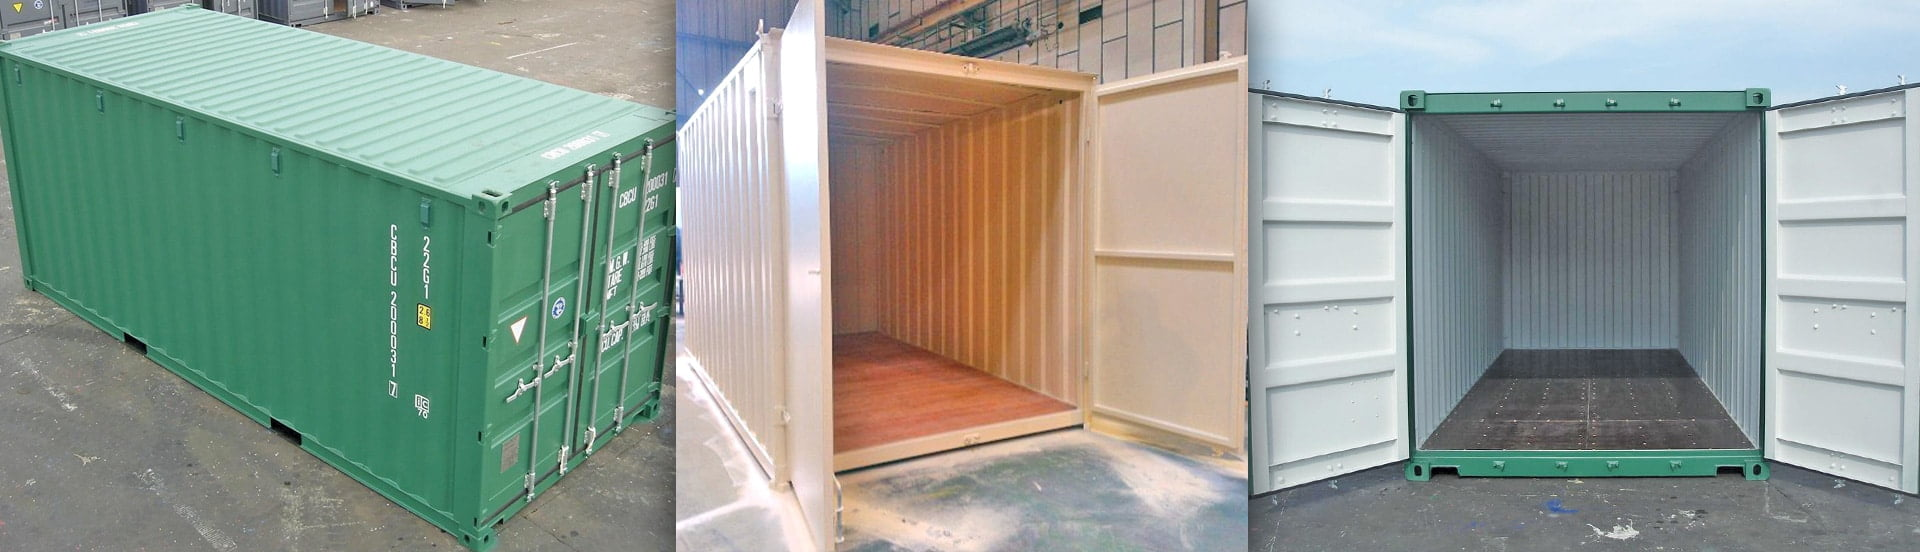 Garden Shed Containers